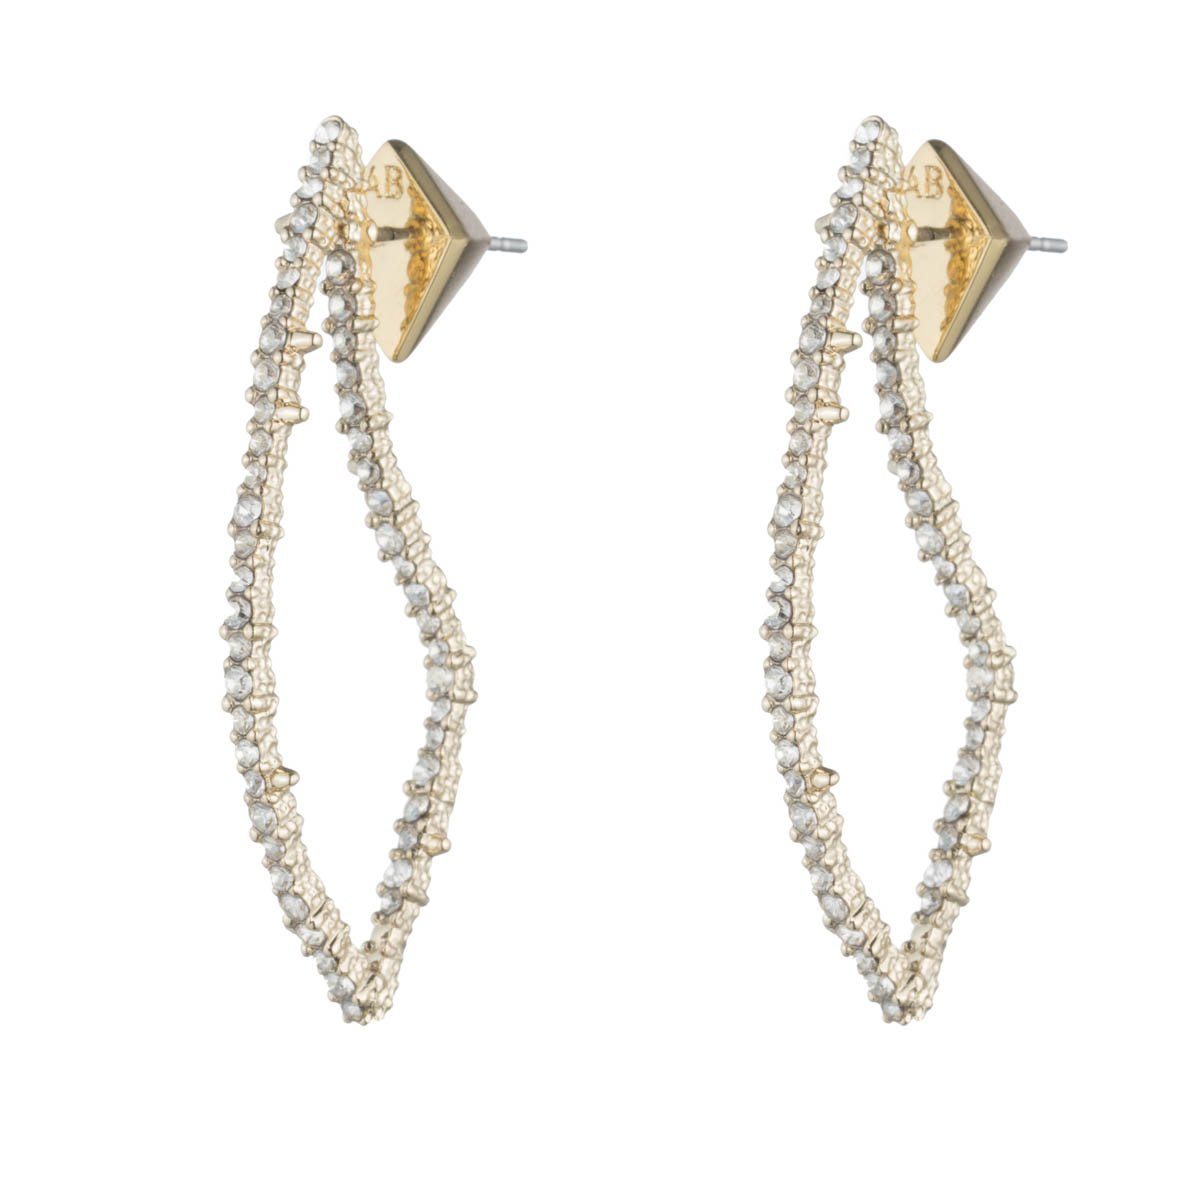 Alexis Bittar Crystal Encrusted Abstract Thorn Post Drop Earrings, 10K Gold